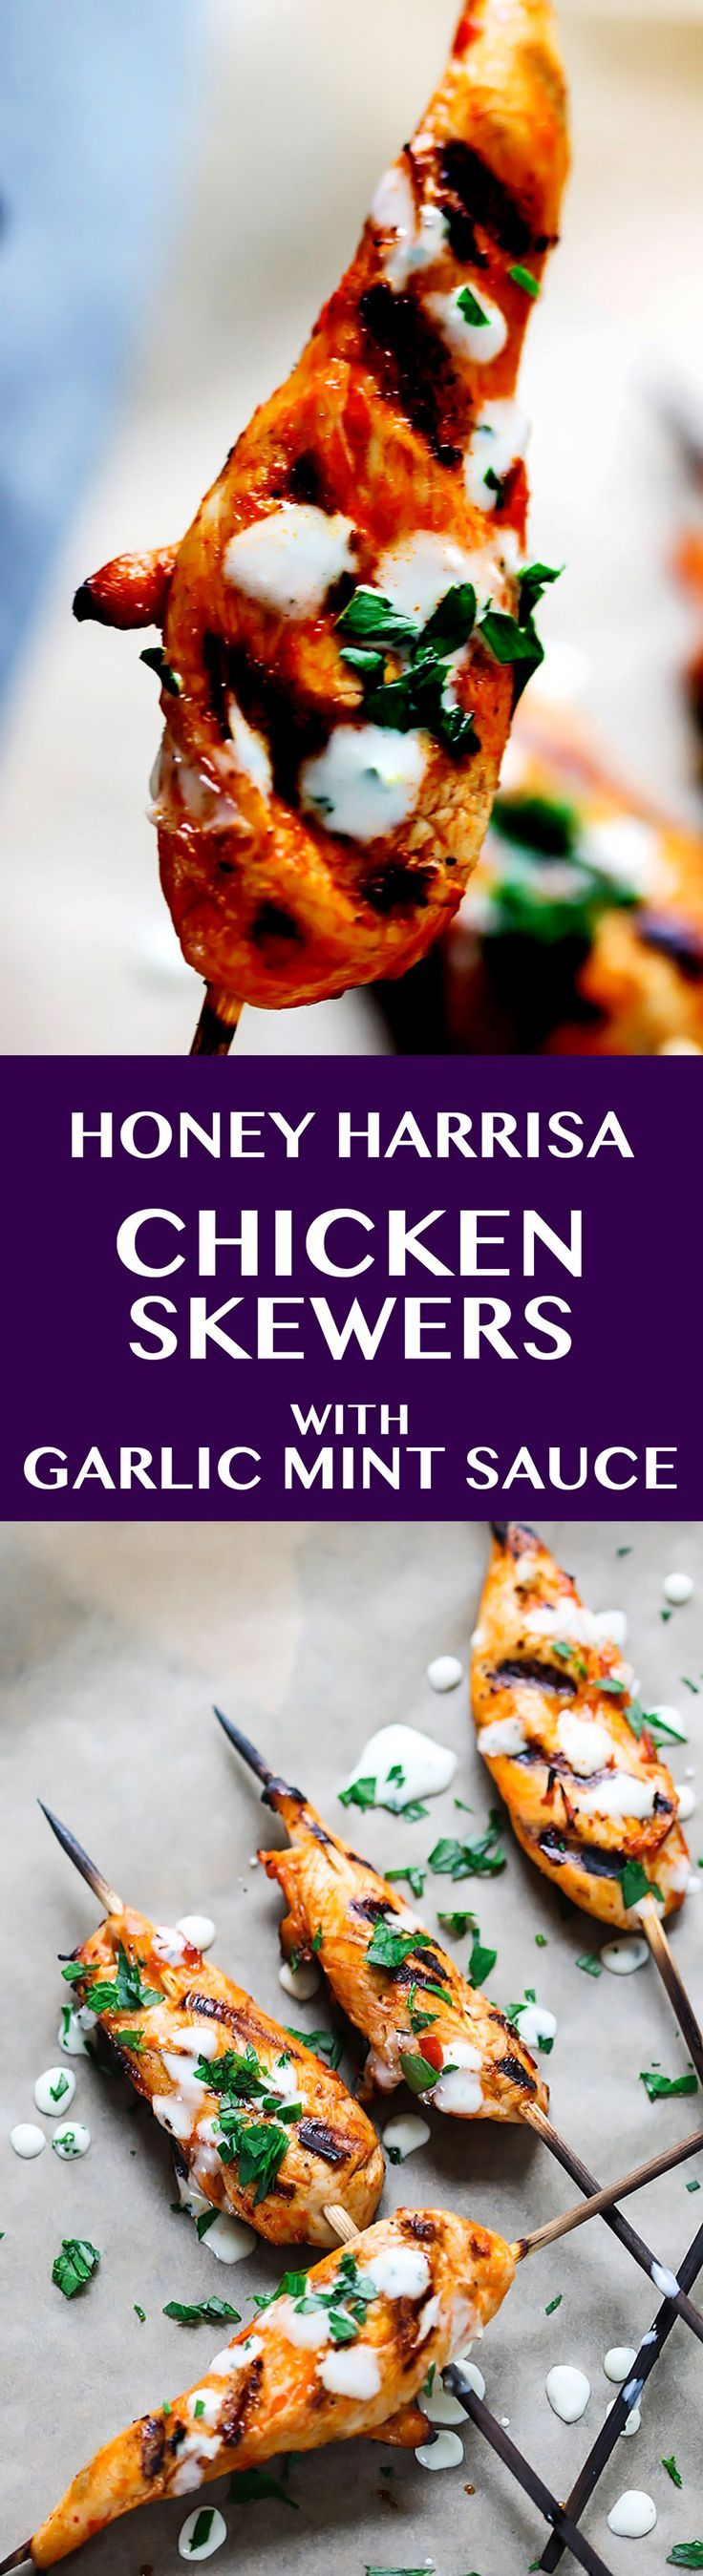 Honey Harrisa Chicken Skewers with Garlic Mint Sauce – amazing combination of Mediterranean flavors in these super tasty skewers with a dollops of refreshing garlic mint sauce. My guests couldn't get enough.